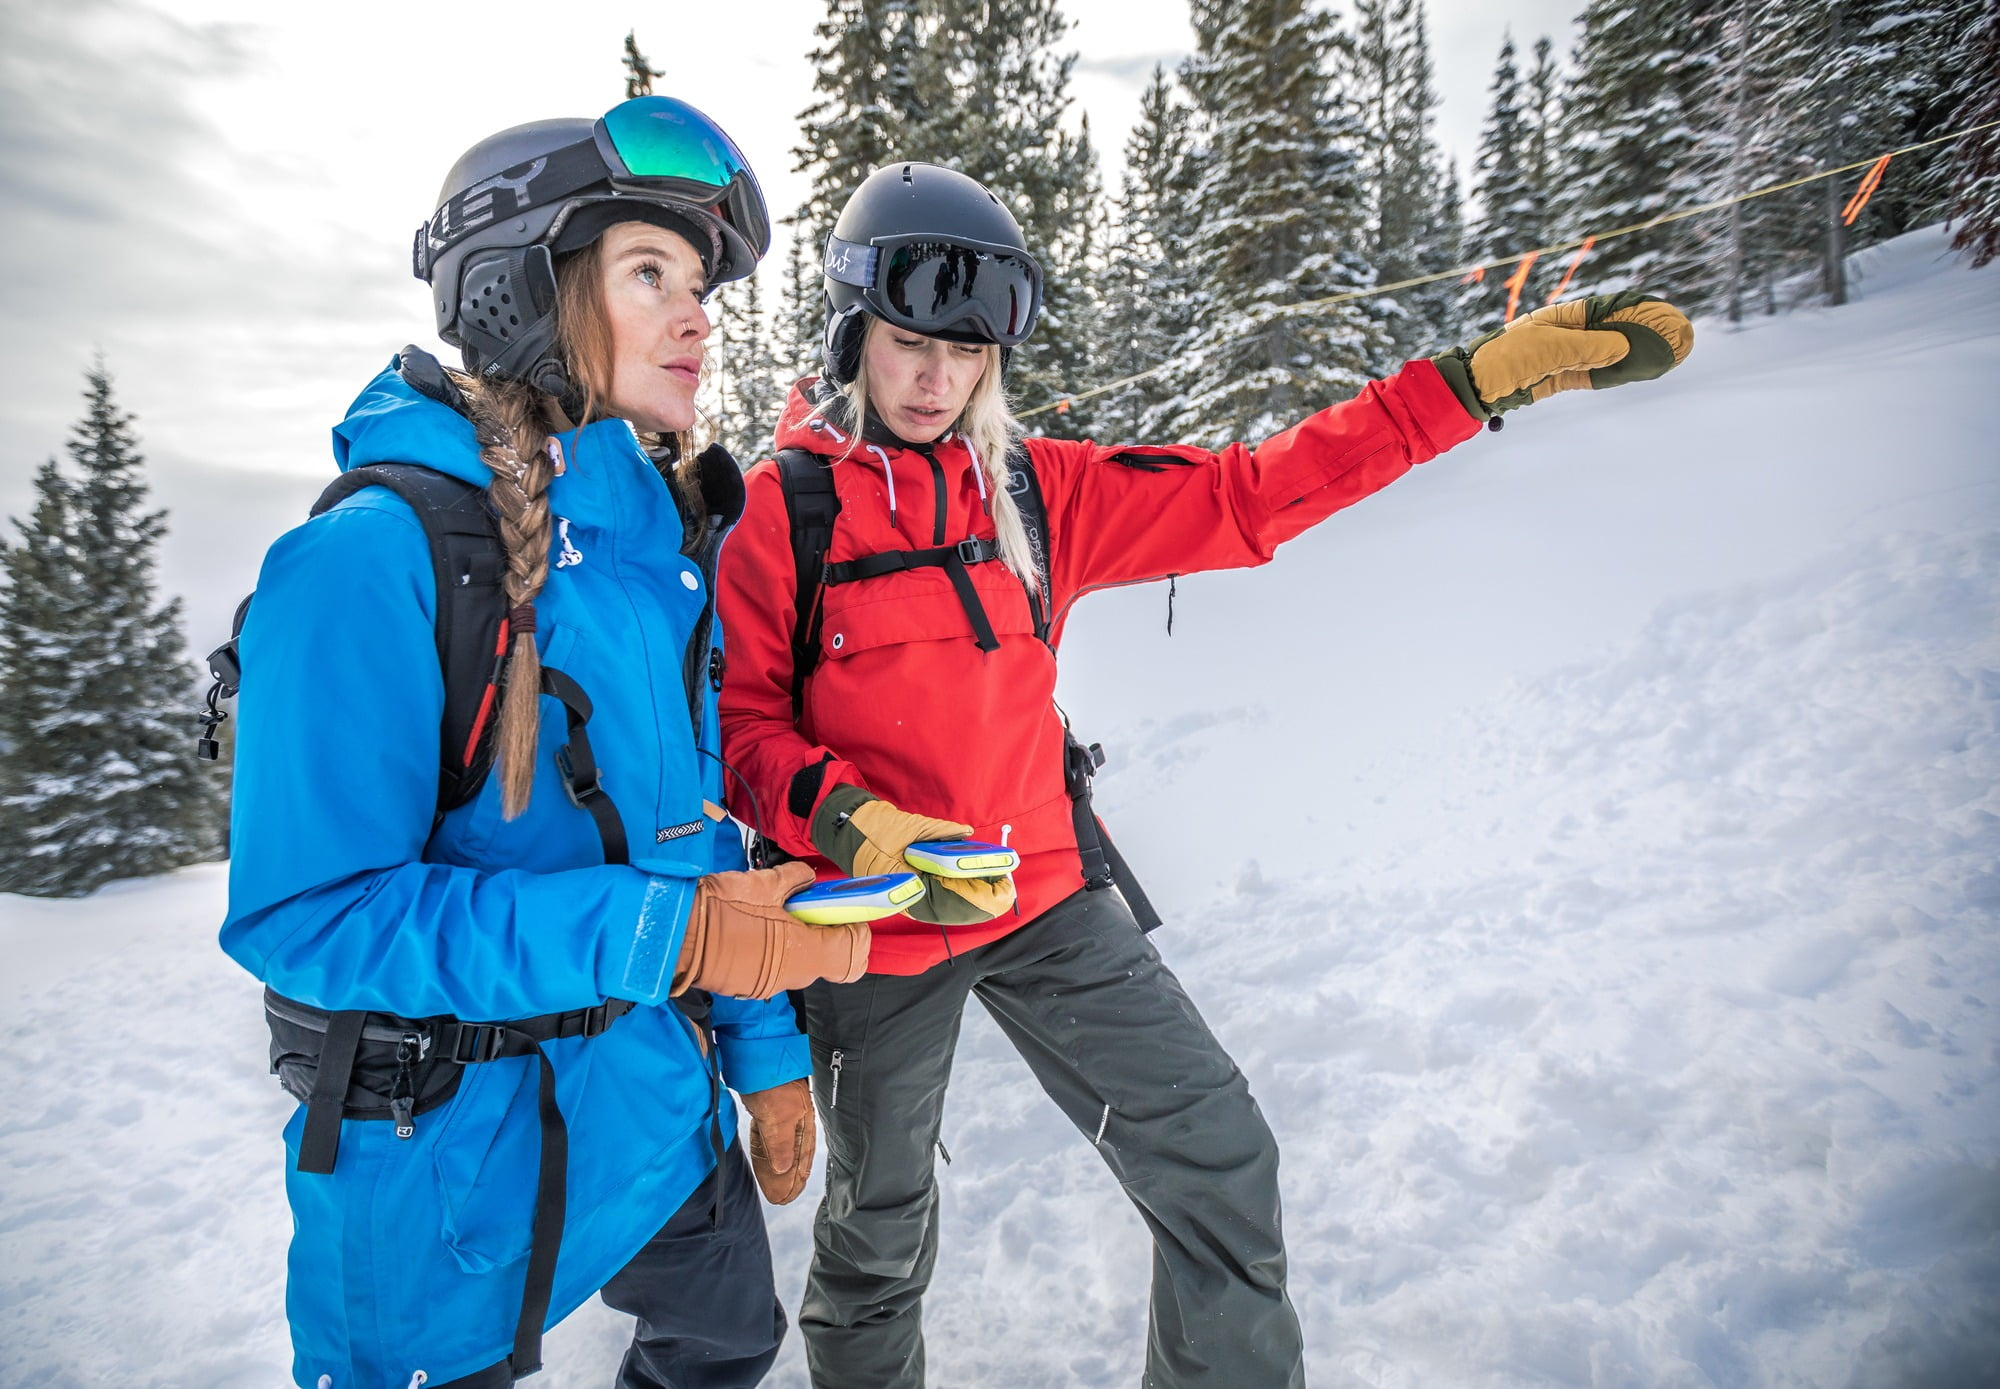 Ladies reviewing avalanche safety in backcountry skiing destination